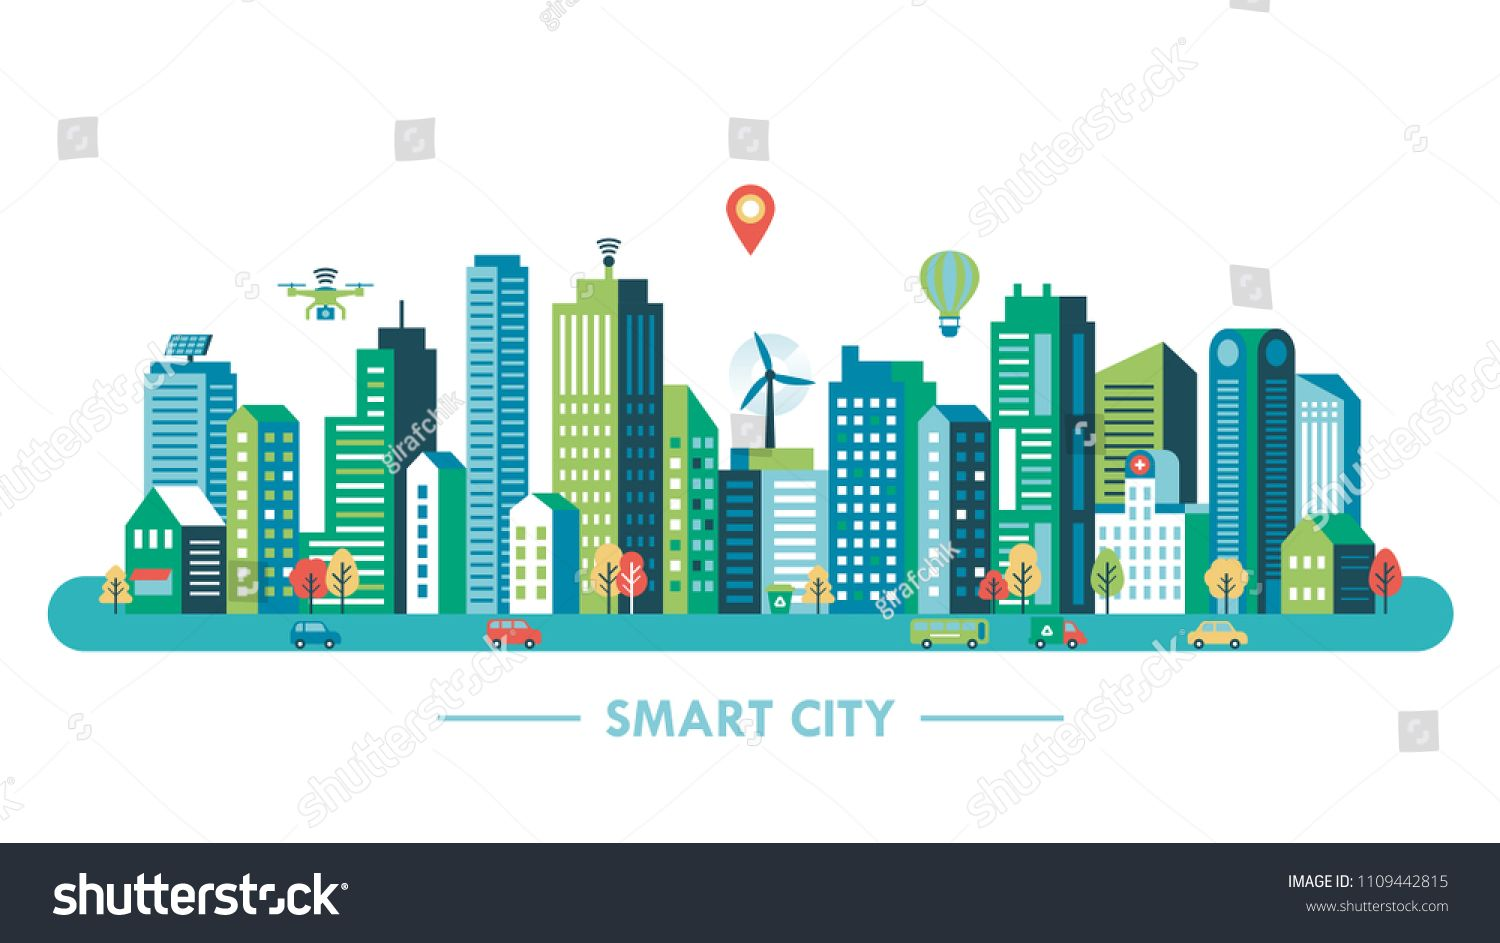 Smart City Concept With Modern Buildings And Network Connection Vector Illustrationconcept Modern Smart City Smart City Modern Buildings Vector Illustration